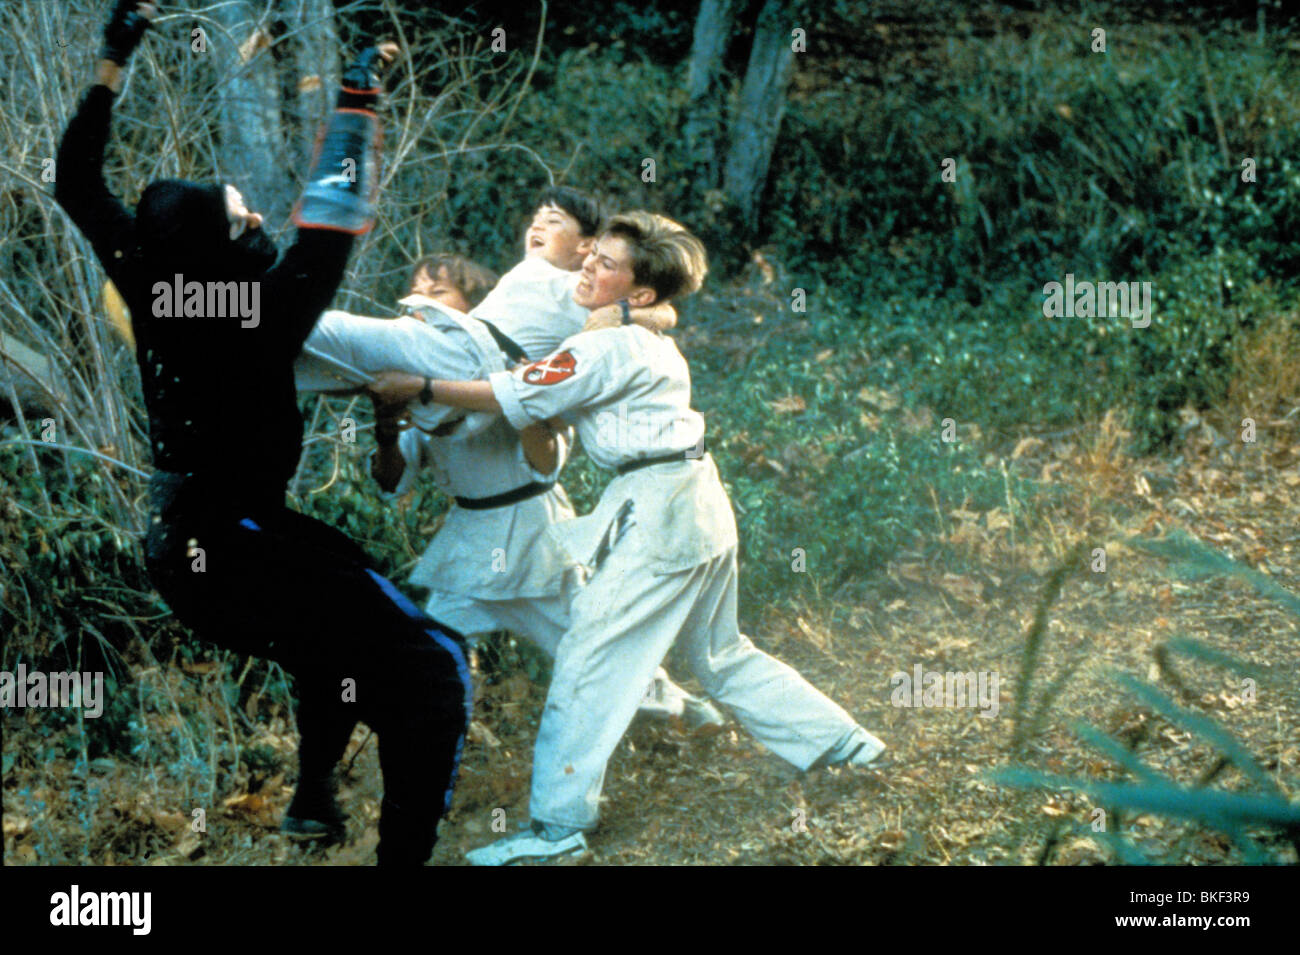 THREE NINJAS (1993) MAX ELLIOTT SLADE, CHAD POWER, MICHAEL TREANOR TNJA 003 - Stock Image